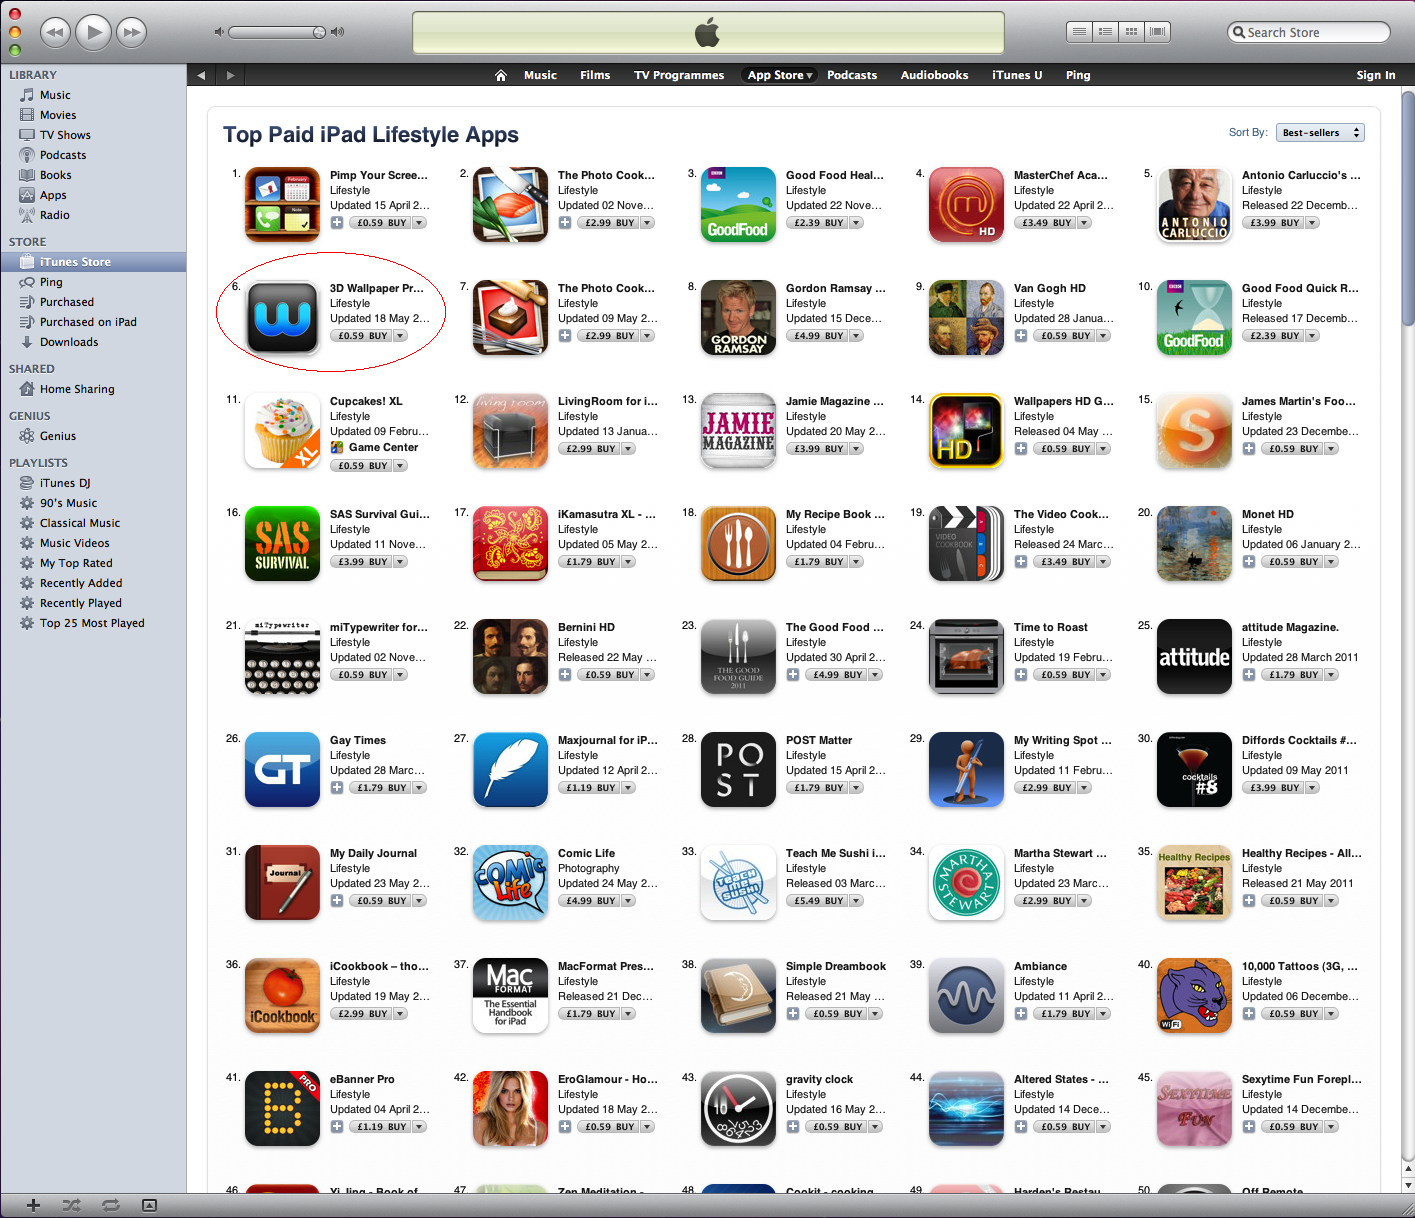 3d Wallpaper Pro By Tecmark Is Moving Up The Charts